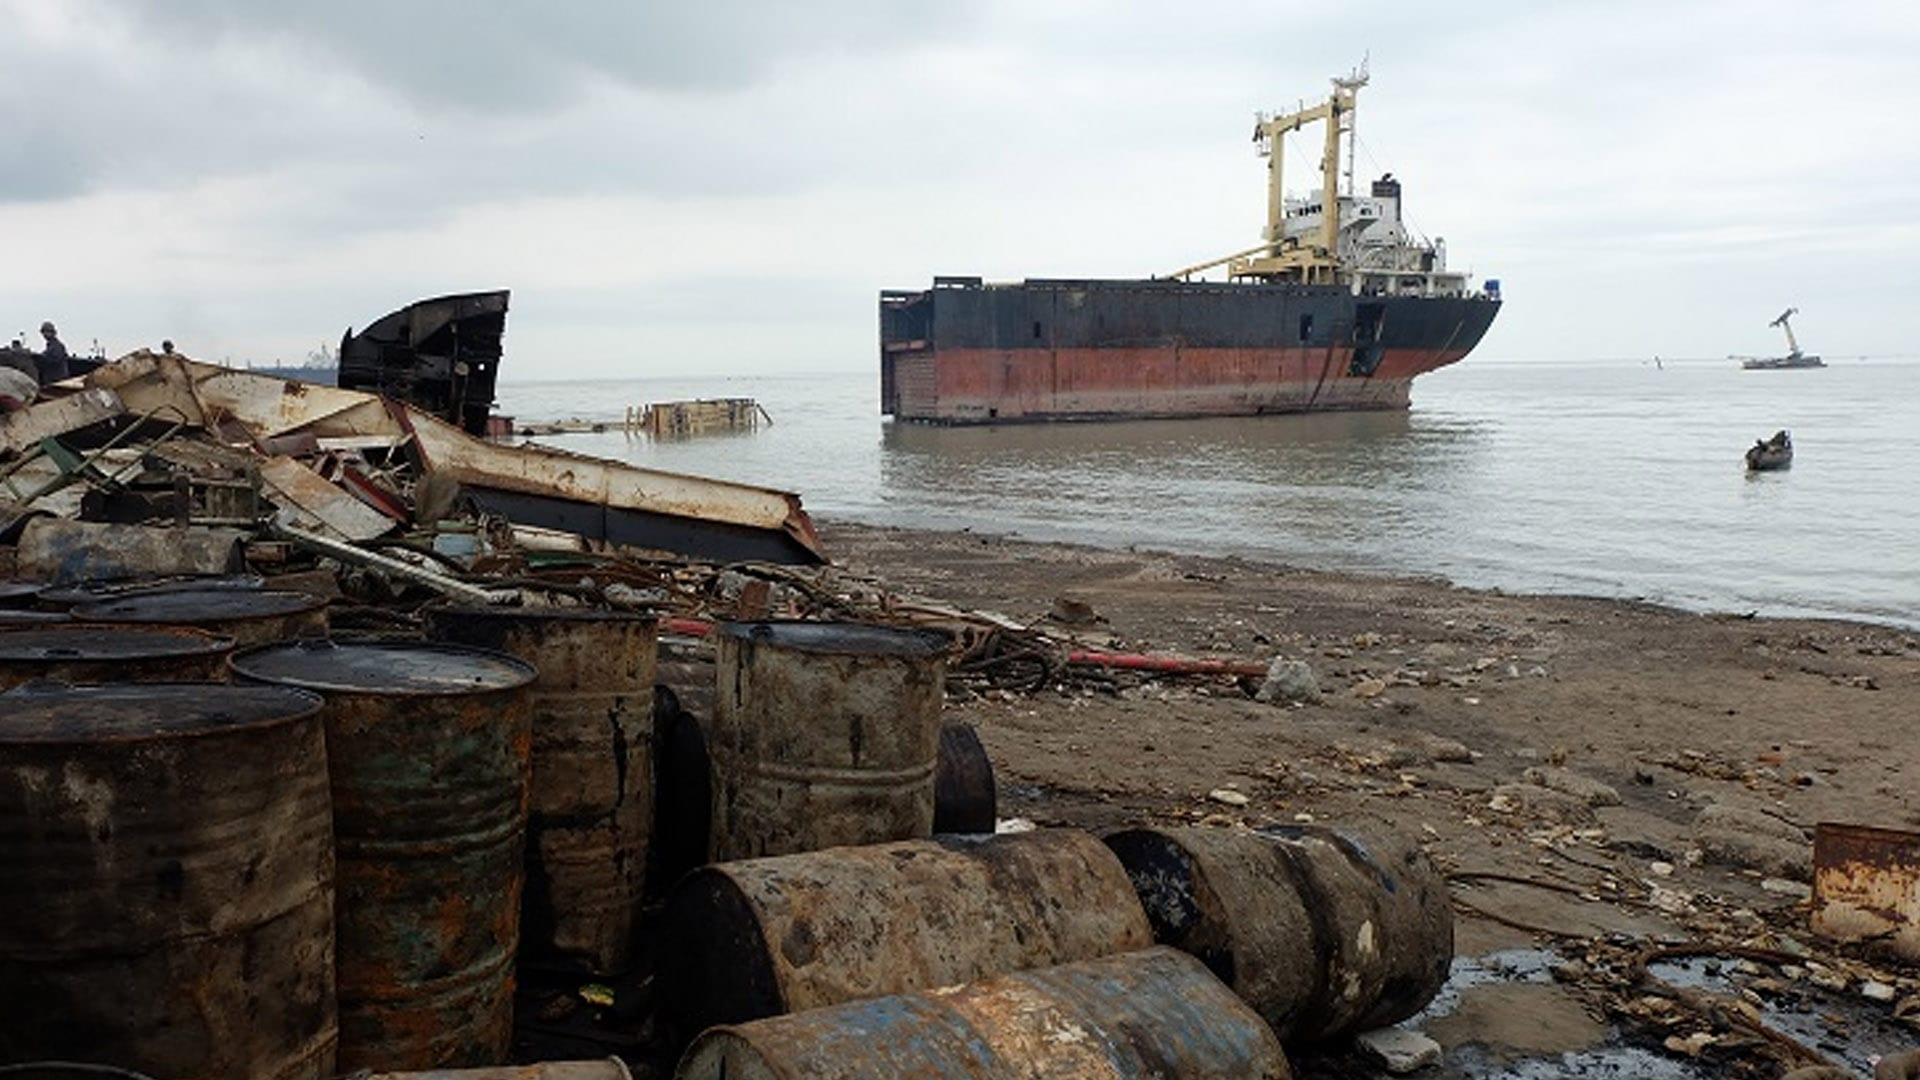 NGO Shipbreaking Platform Shipping Companies Still Favor the Worst Scrapyards